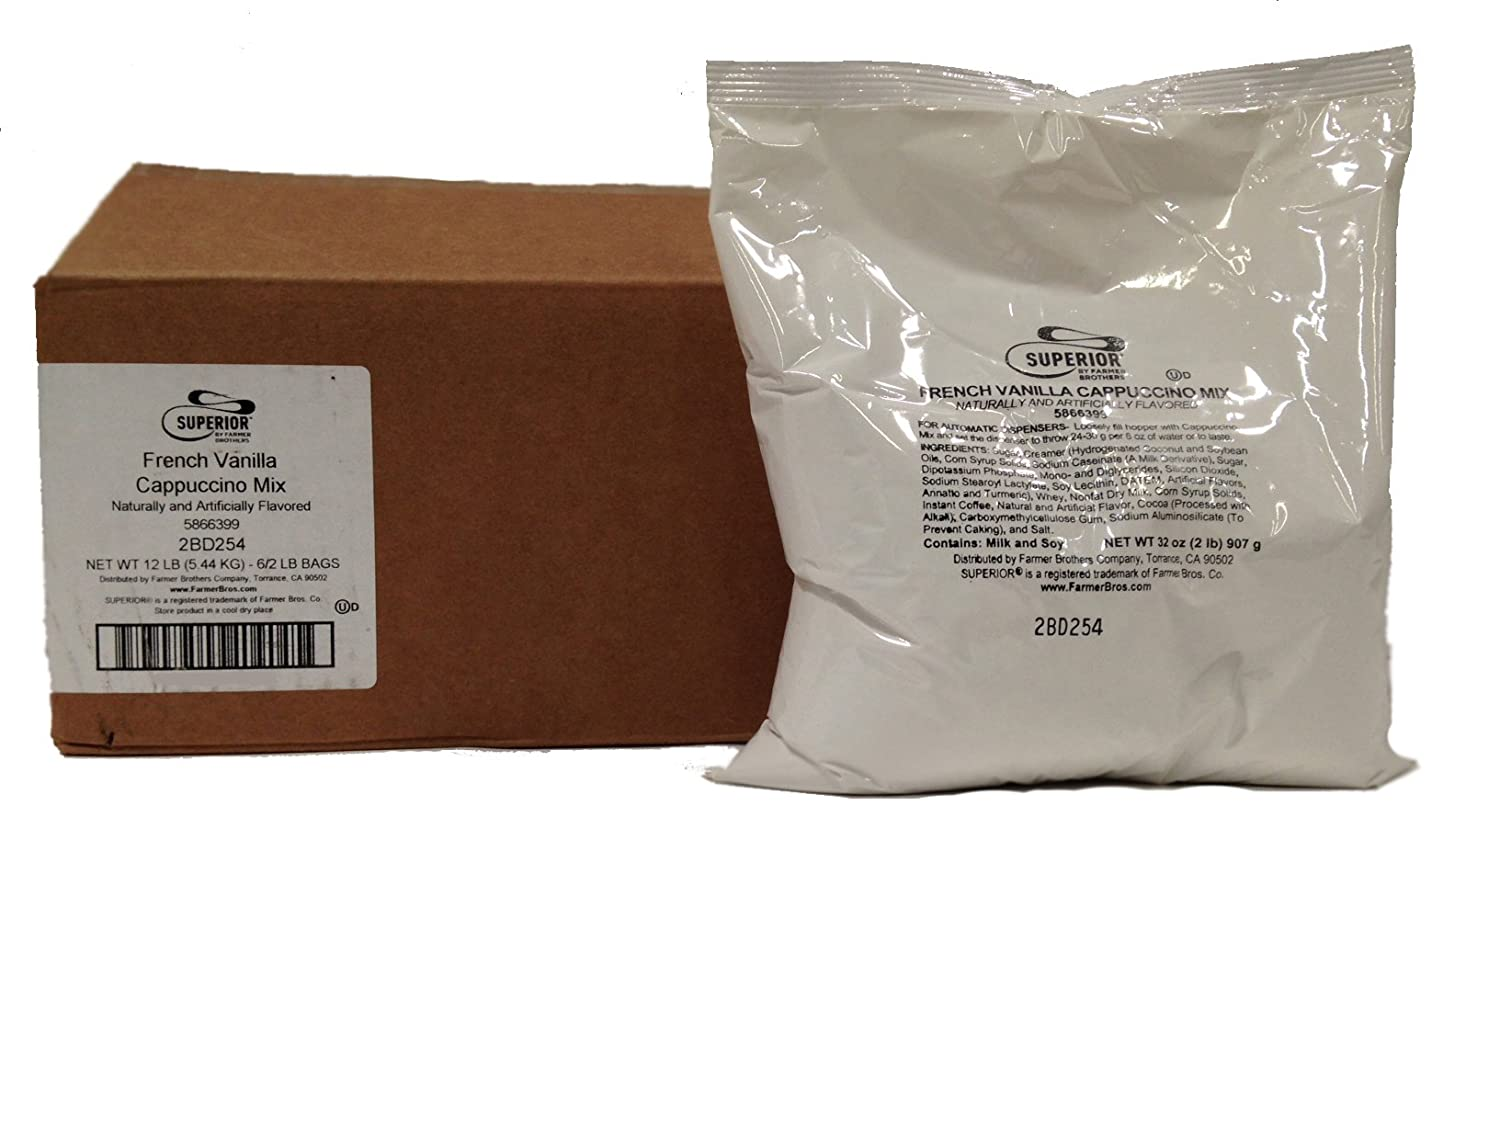 Superior French Vanilla Cappuccino Mix (6 bags/2 lbs each)